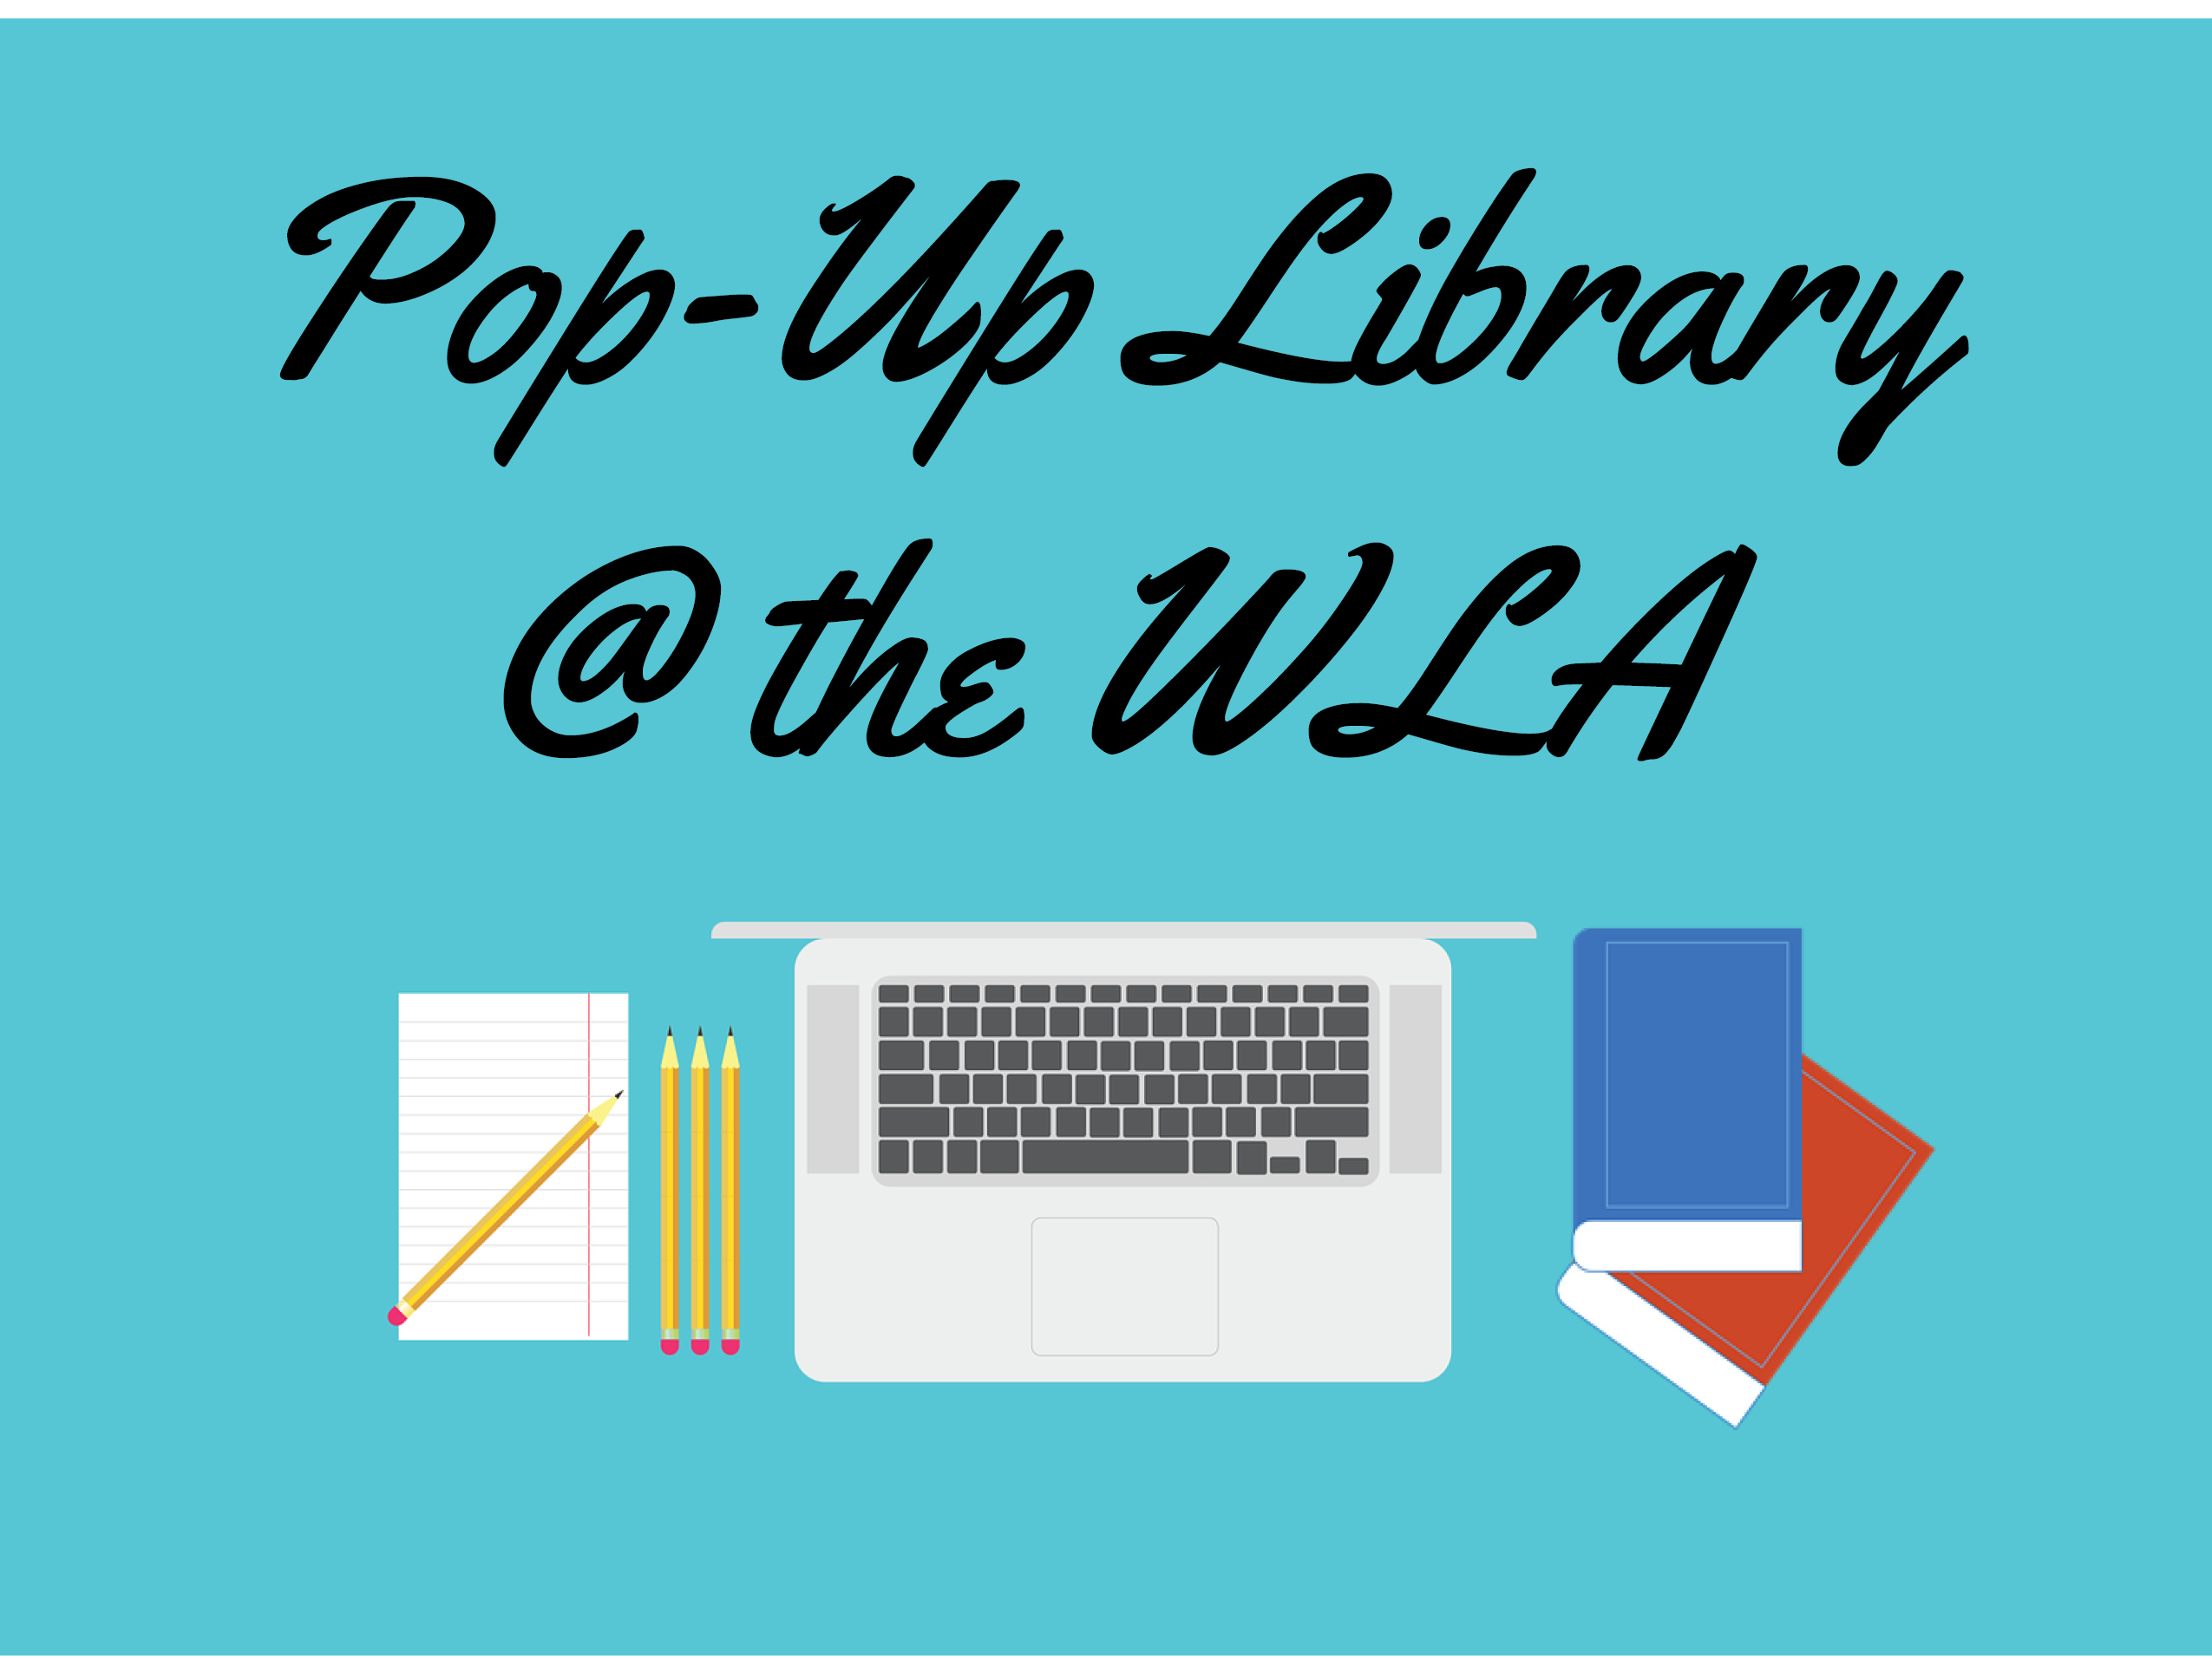 CANCELED: Pop-Up Library at the WLA